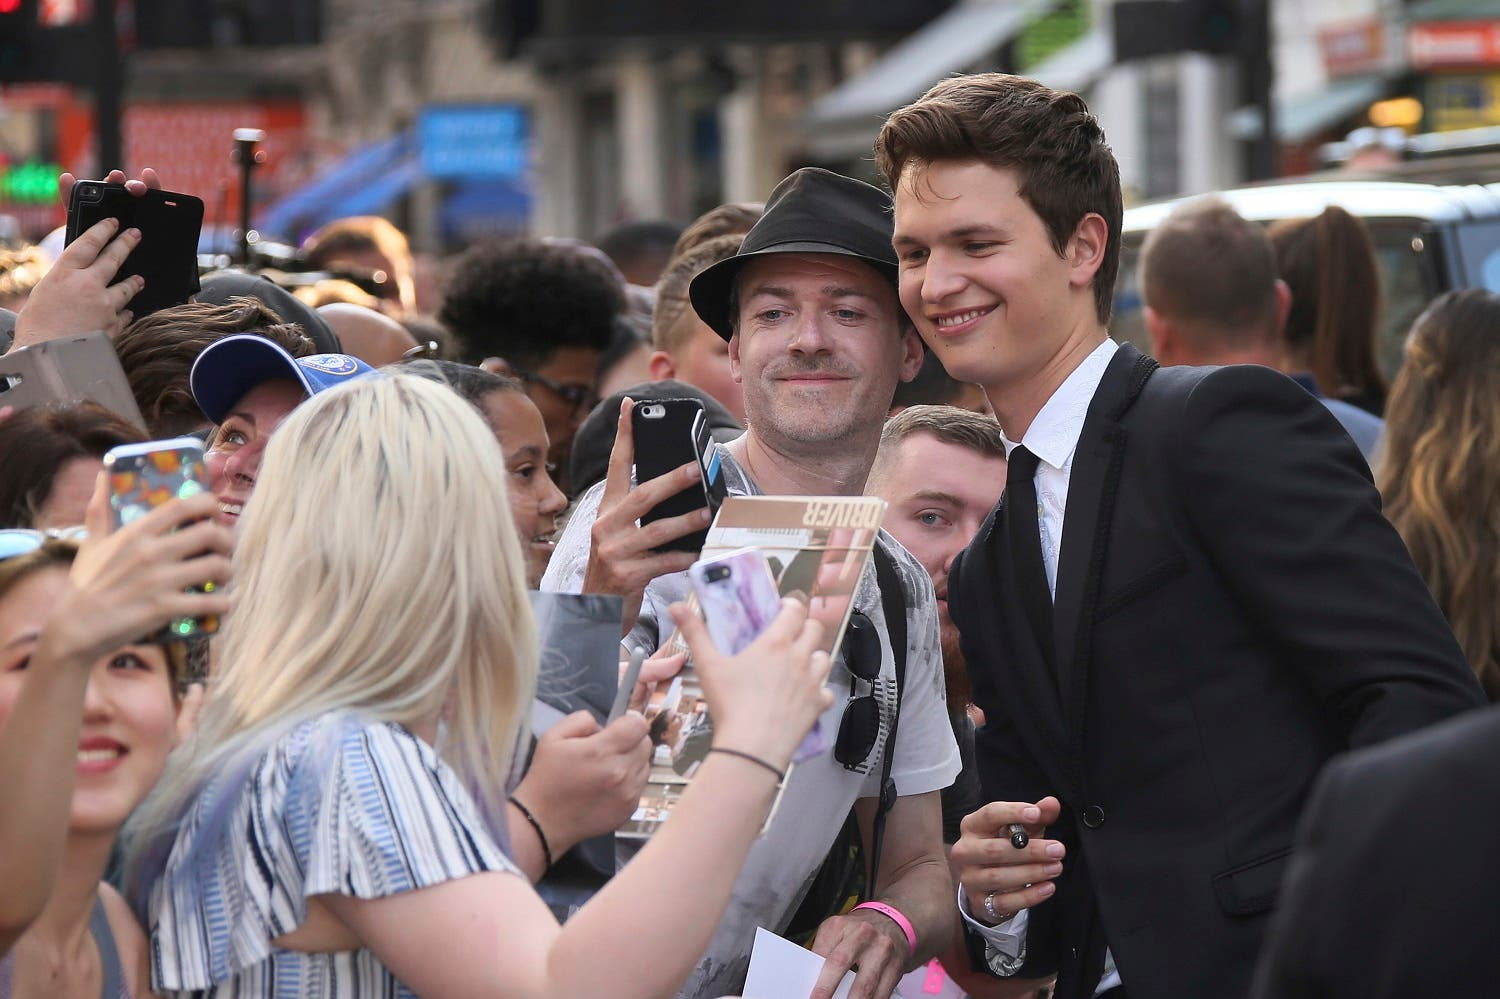 Actor Ansel Elgort poses for photographs upon arrival at the premiere of the film 'Baby Driver' in London. (AP)